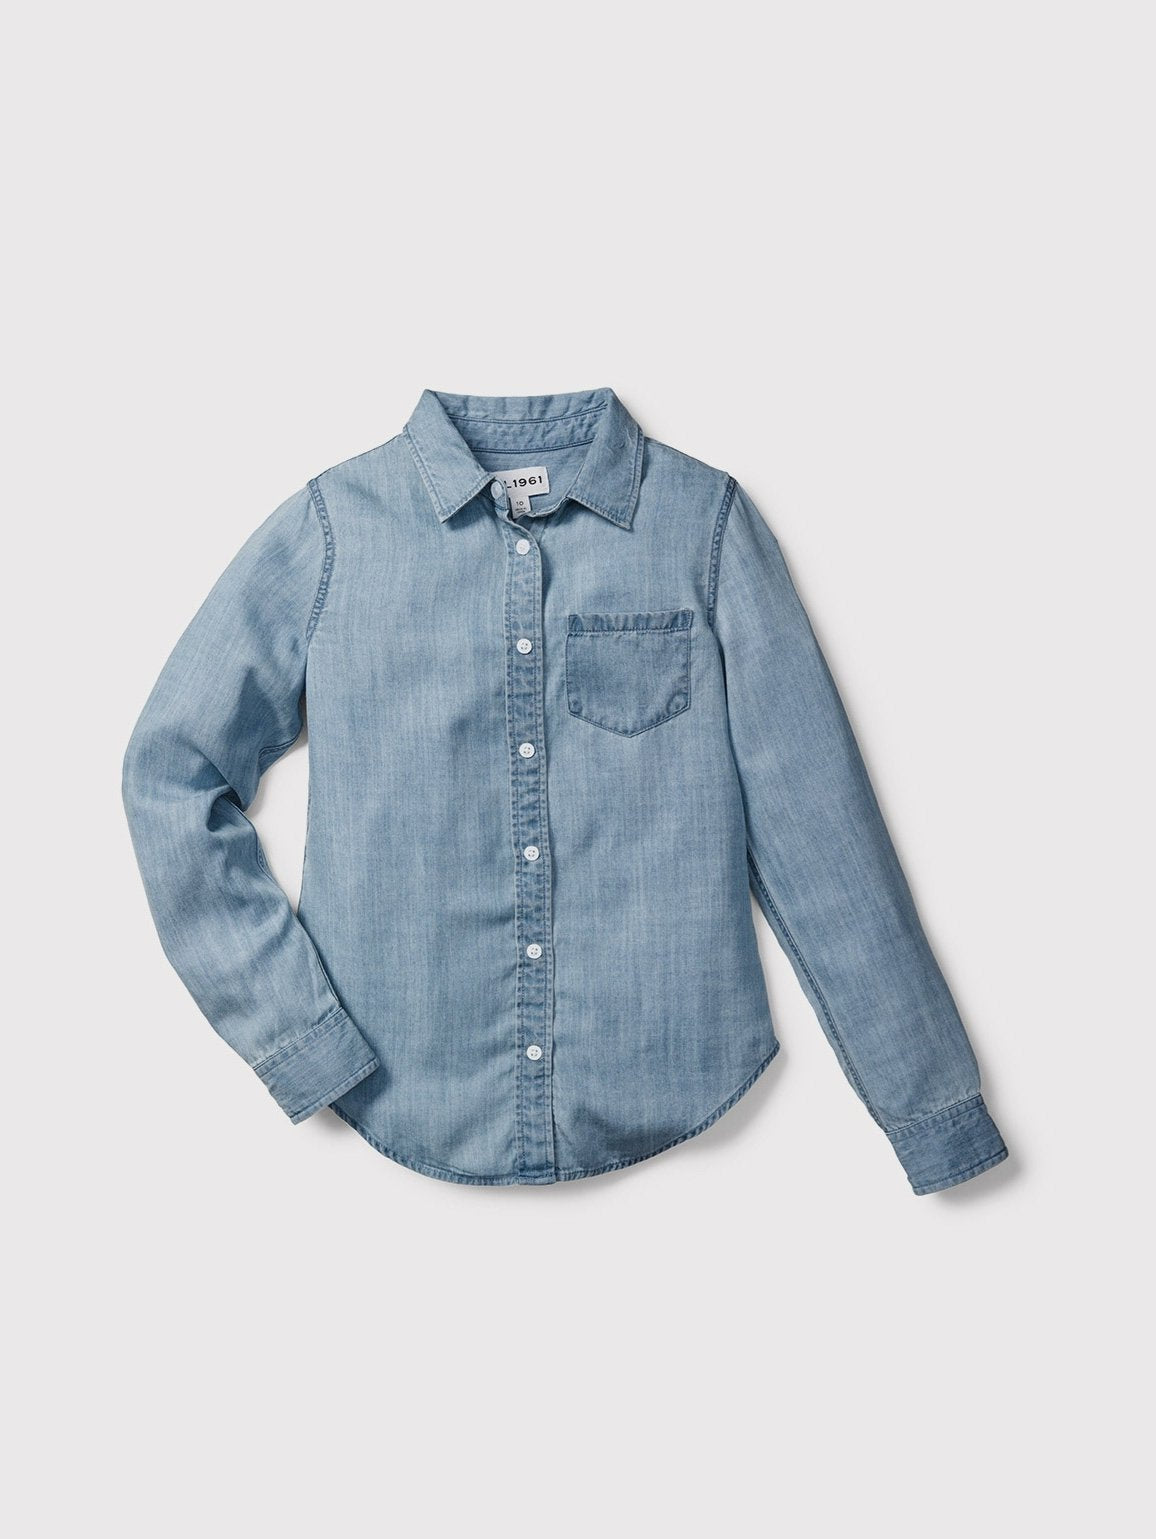 Image of Franklin Shirts / Mid Wash